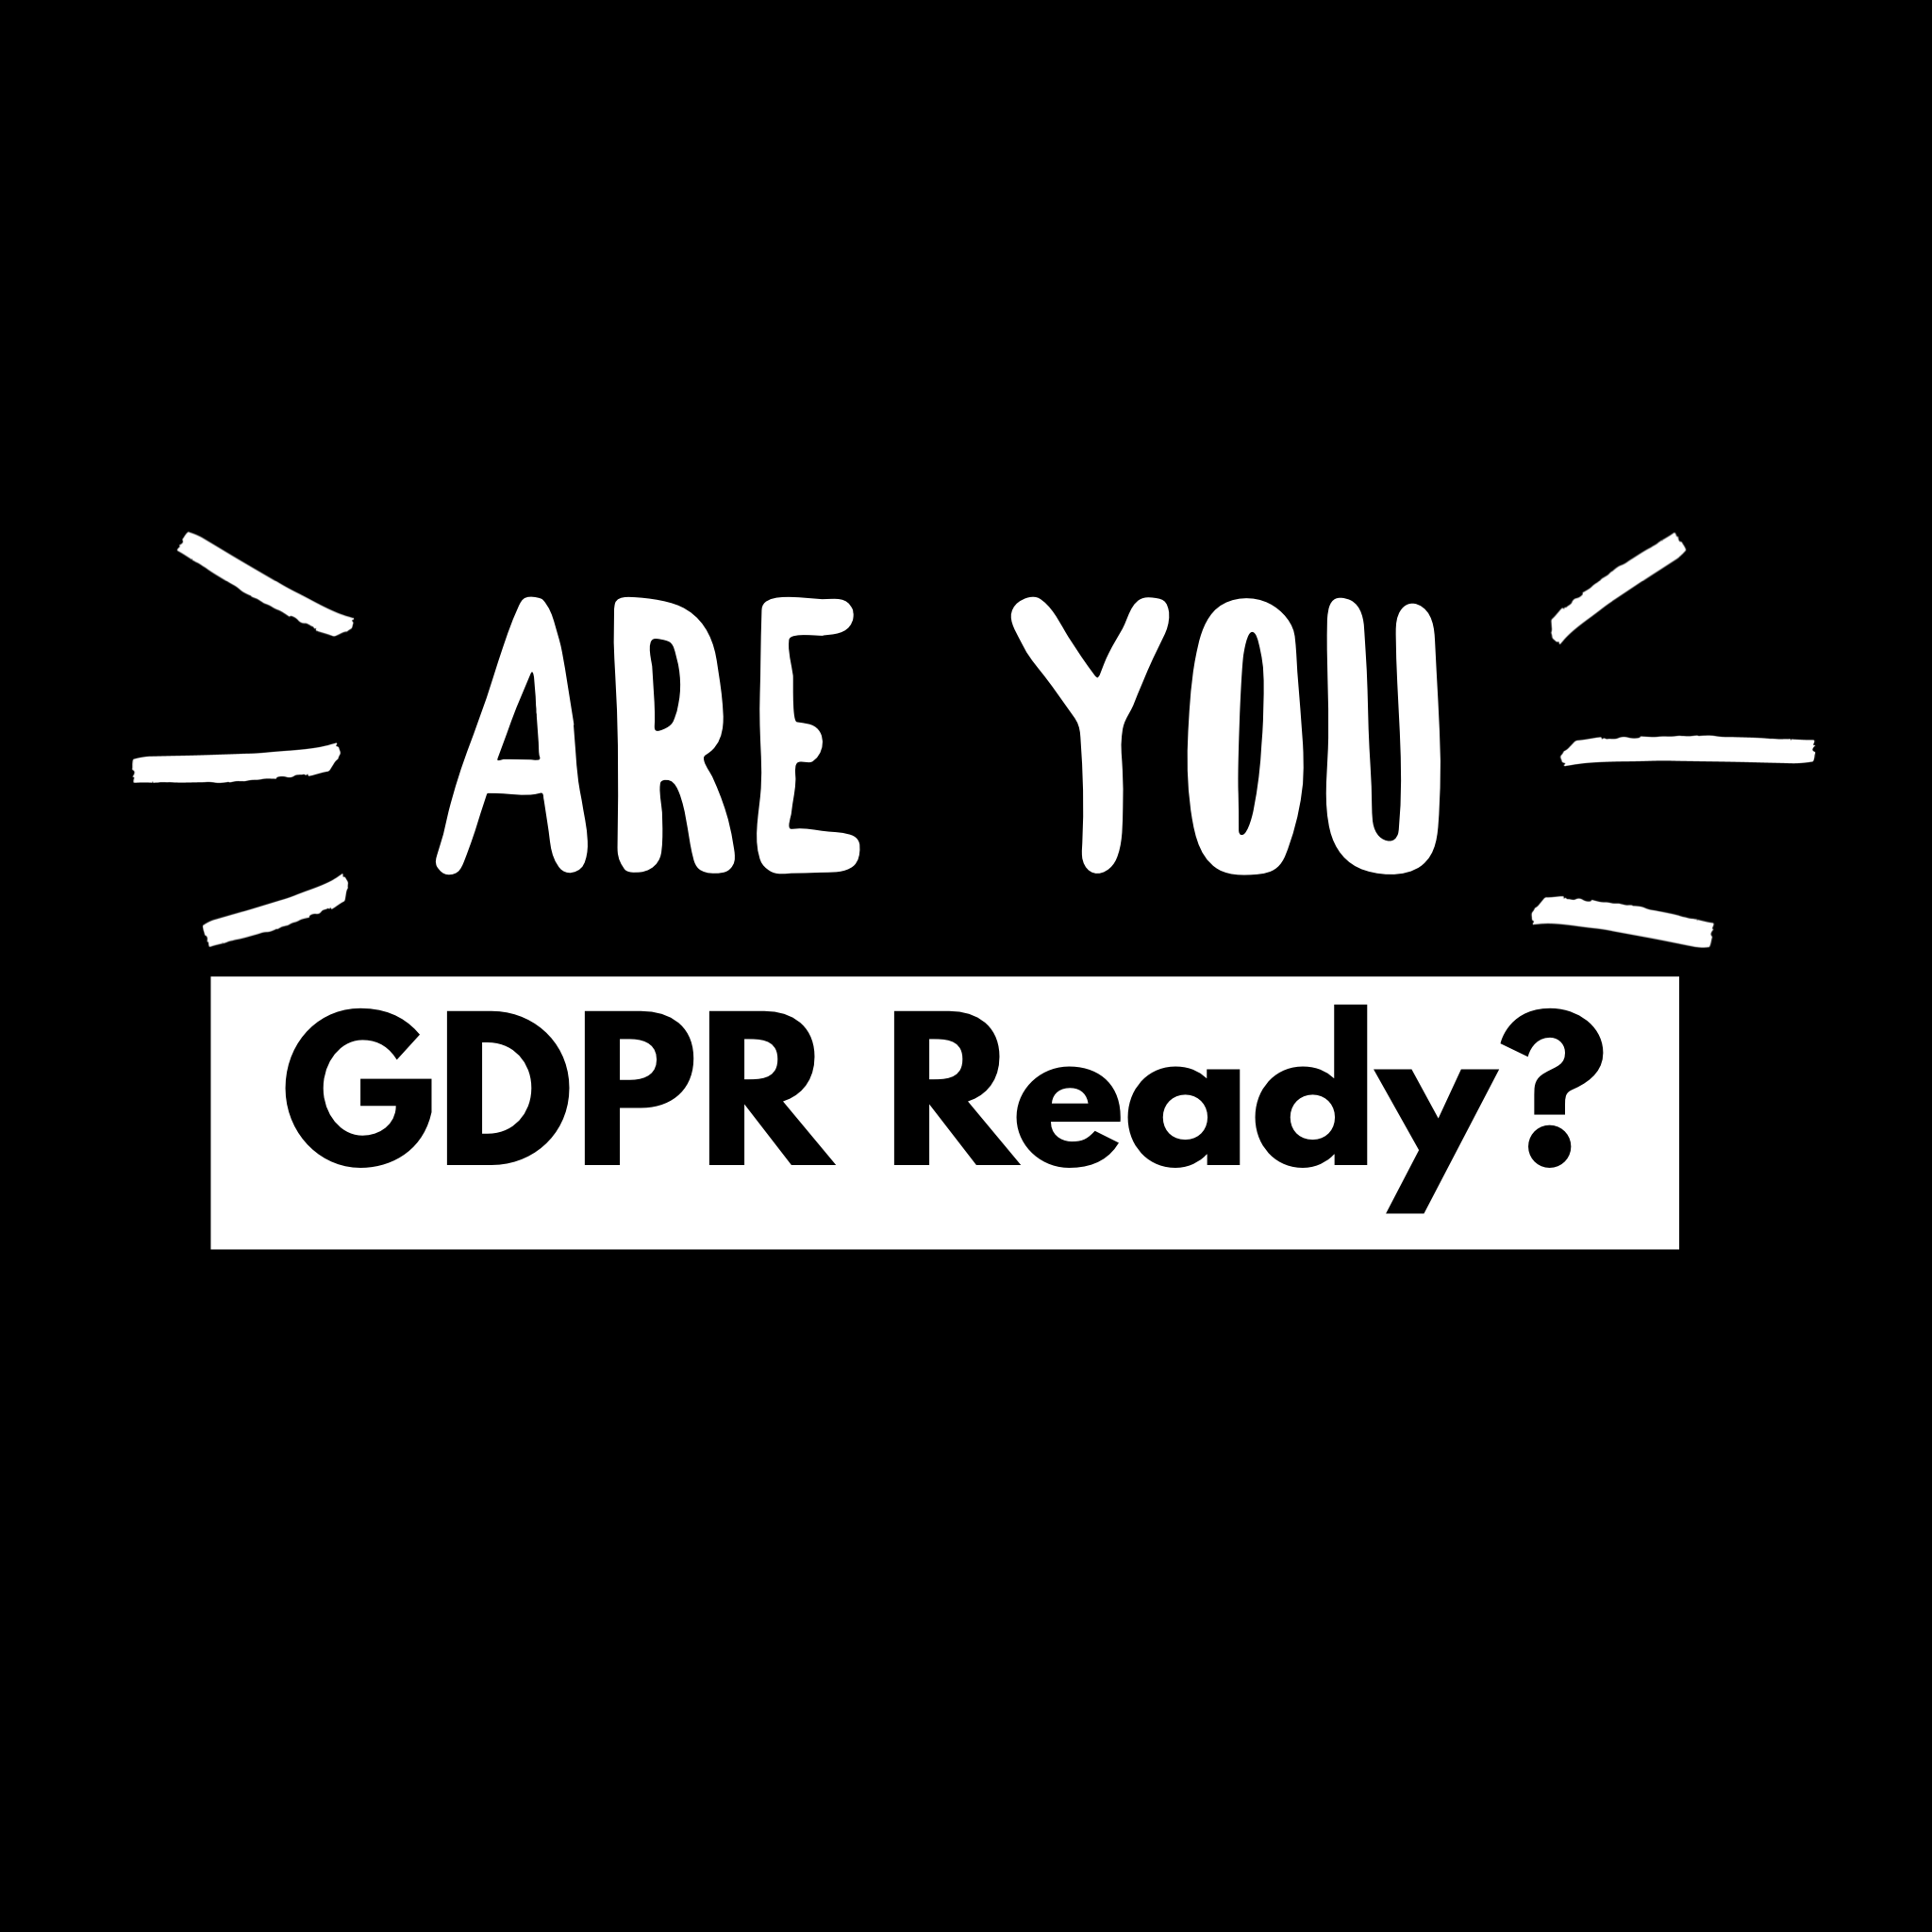 Are You GDPR Ready?